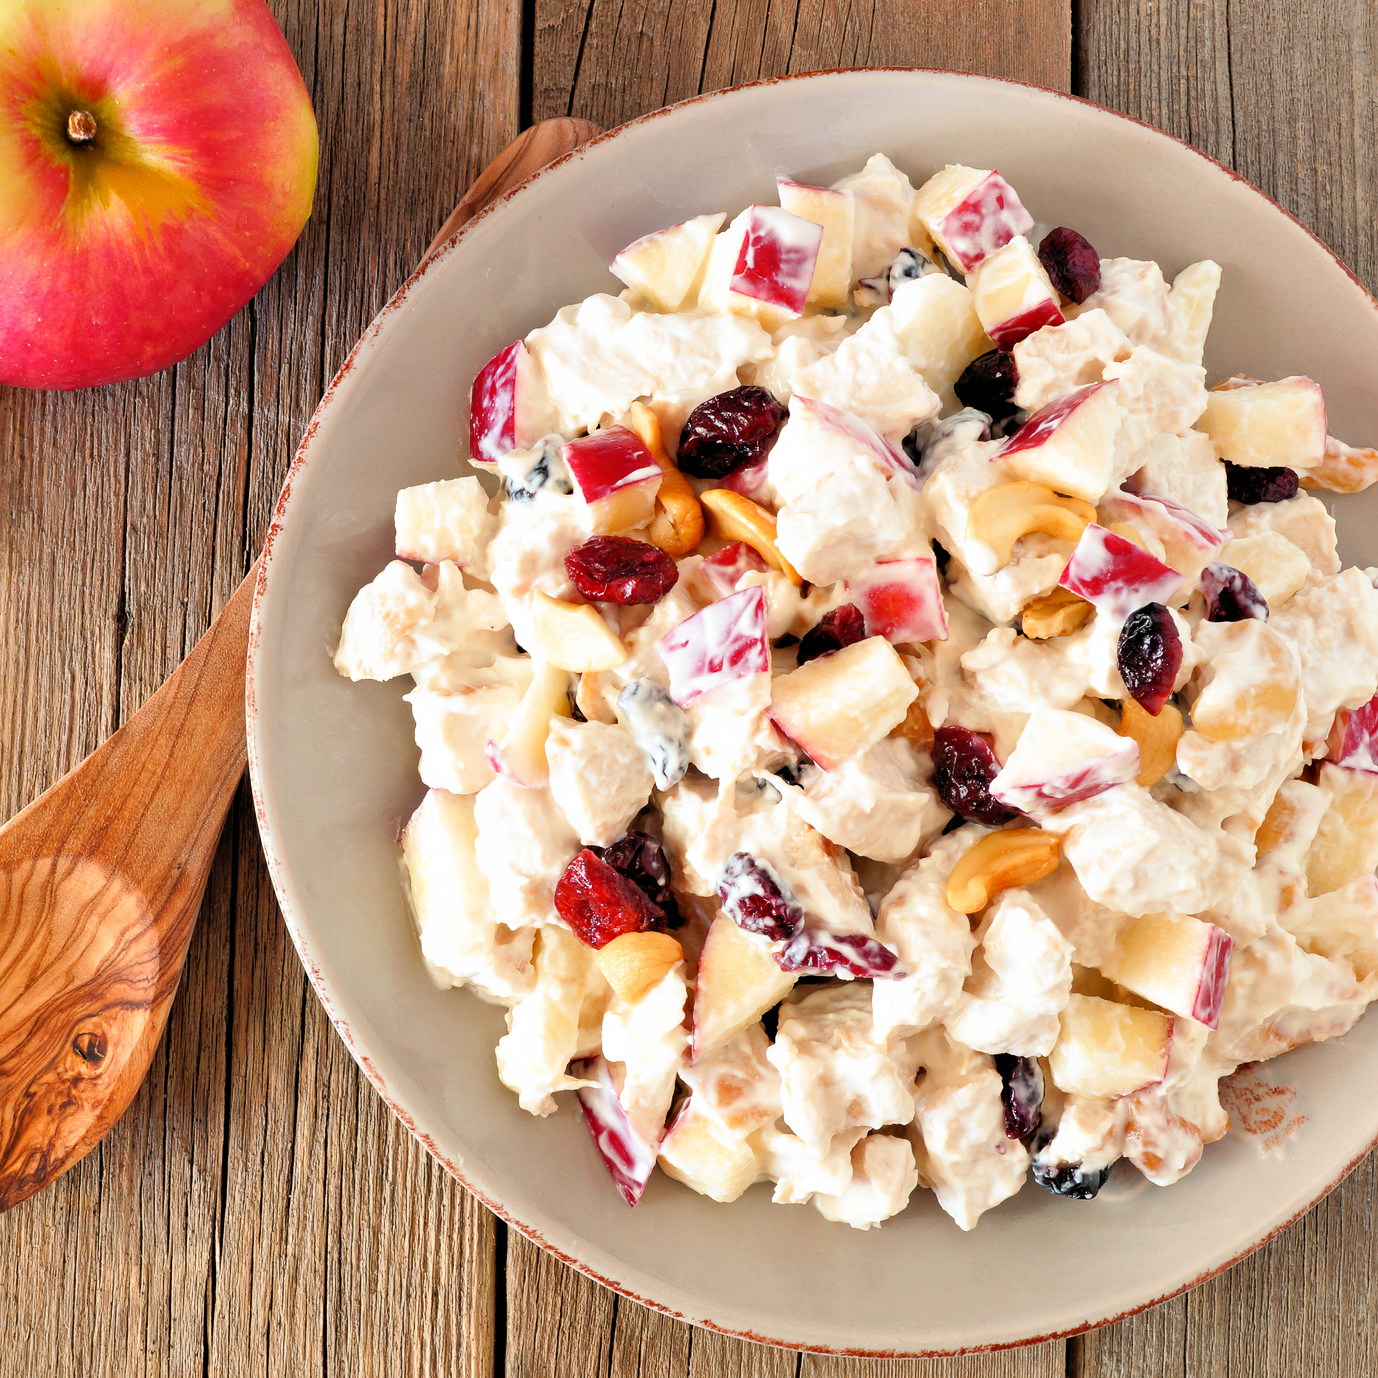 Apple Cranberry Turkey Salad